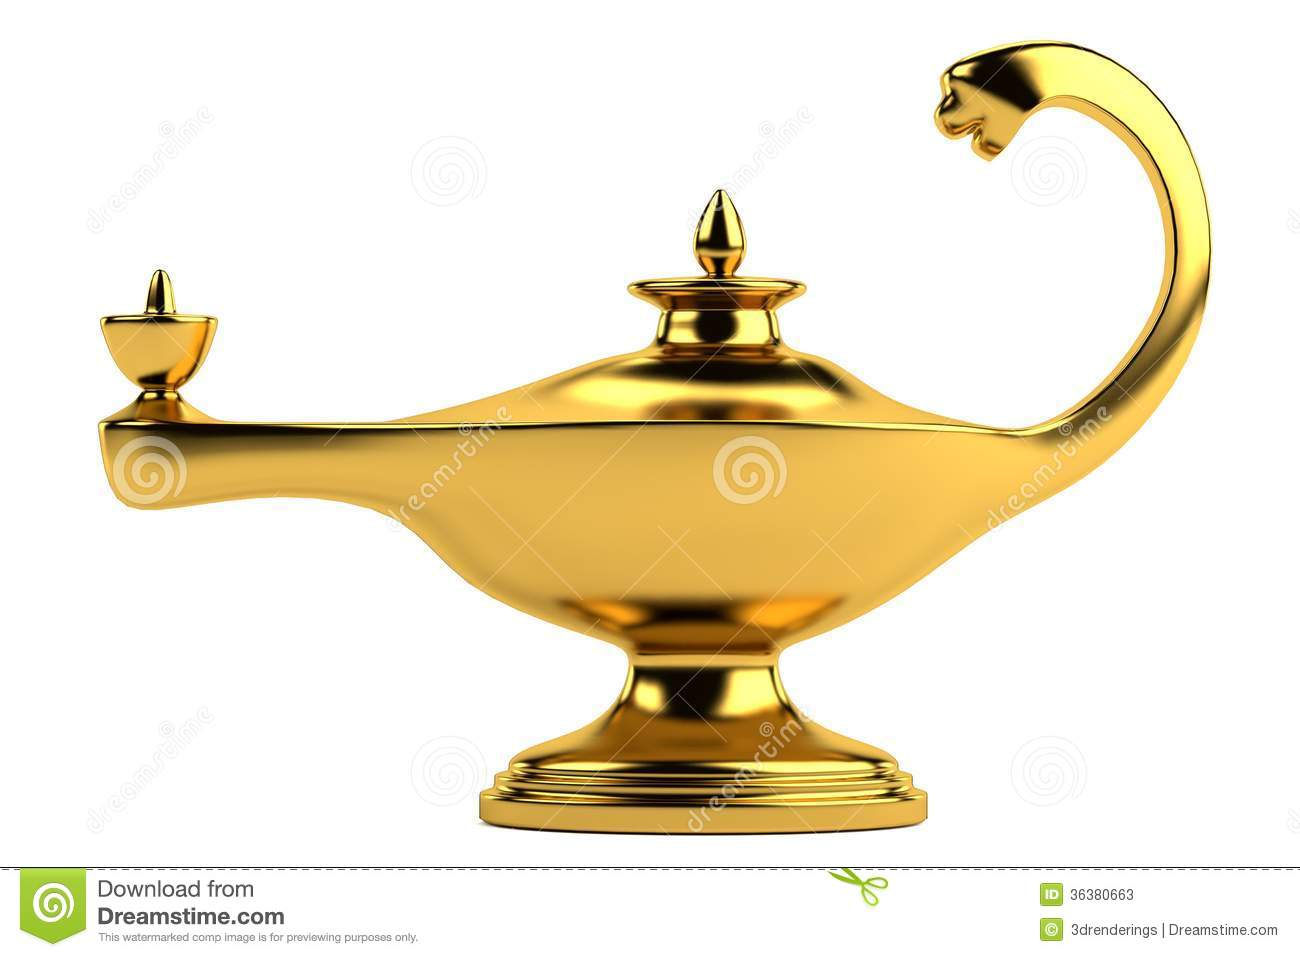 Related Keywords & Suggestions for Aladdin Lamp Clipart